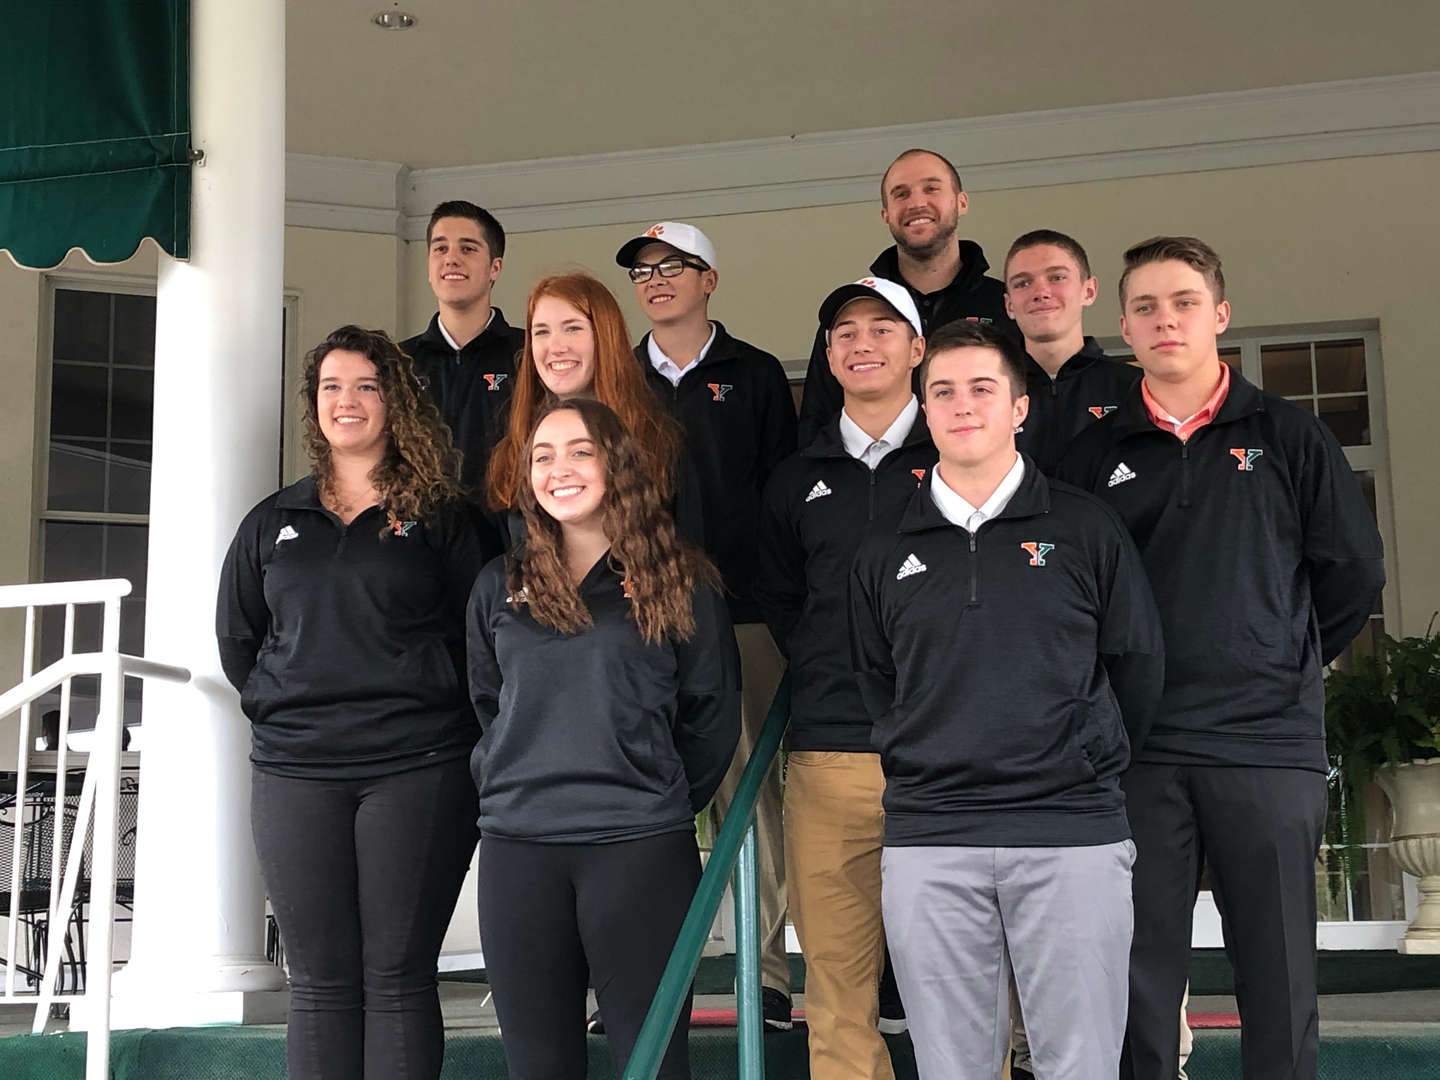 Golf Team at their end of the year banquet @Greensburg Country Club